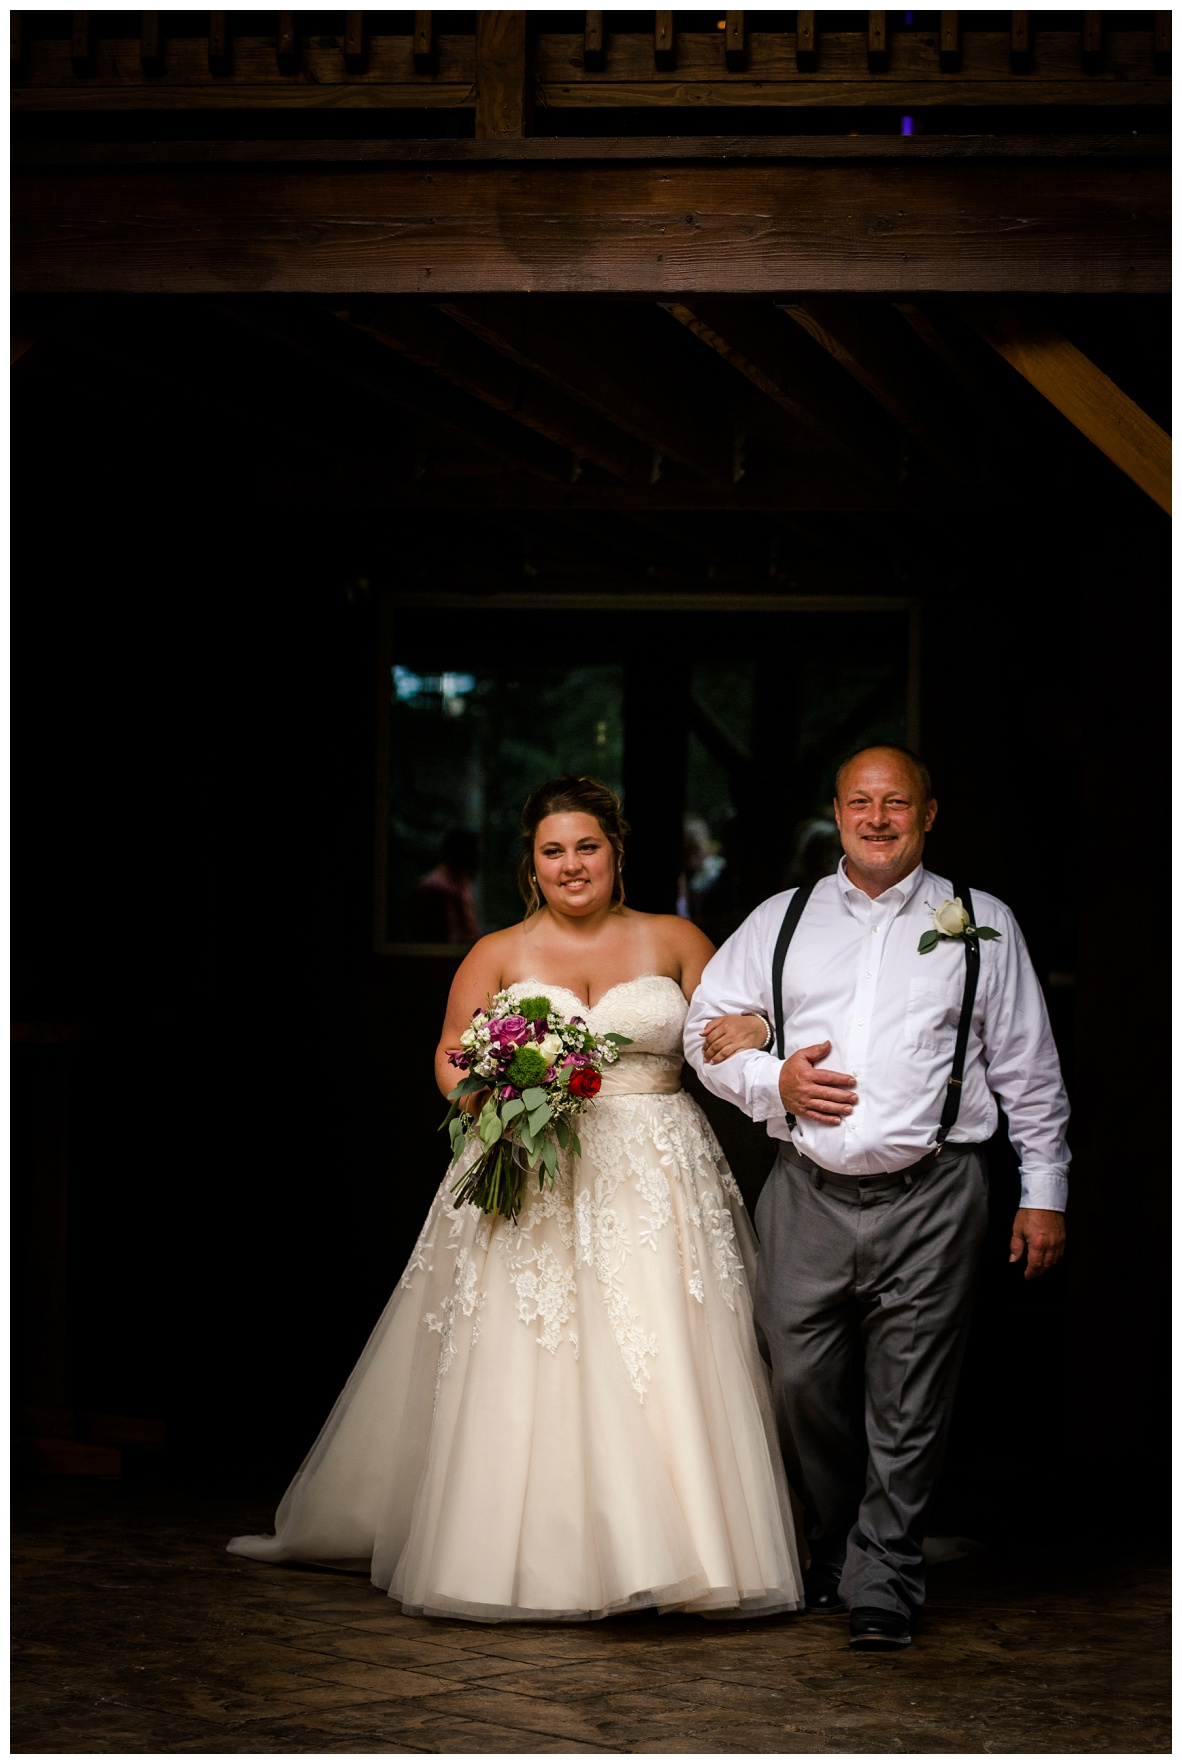 Mr. and Mrs. Thayer_0044.jpg